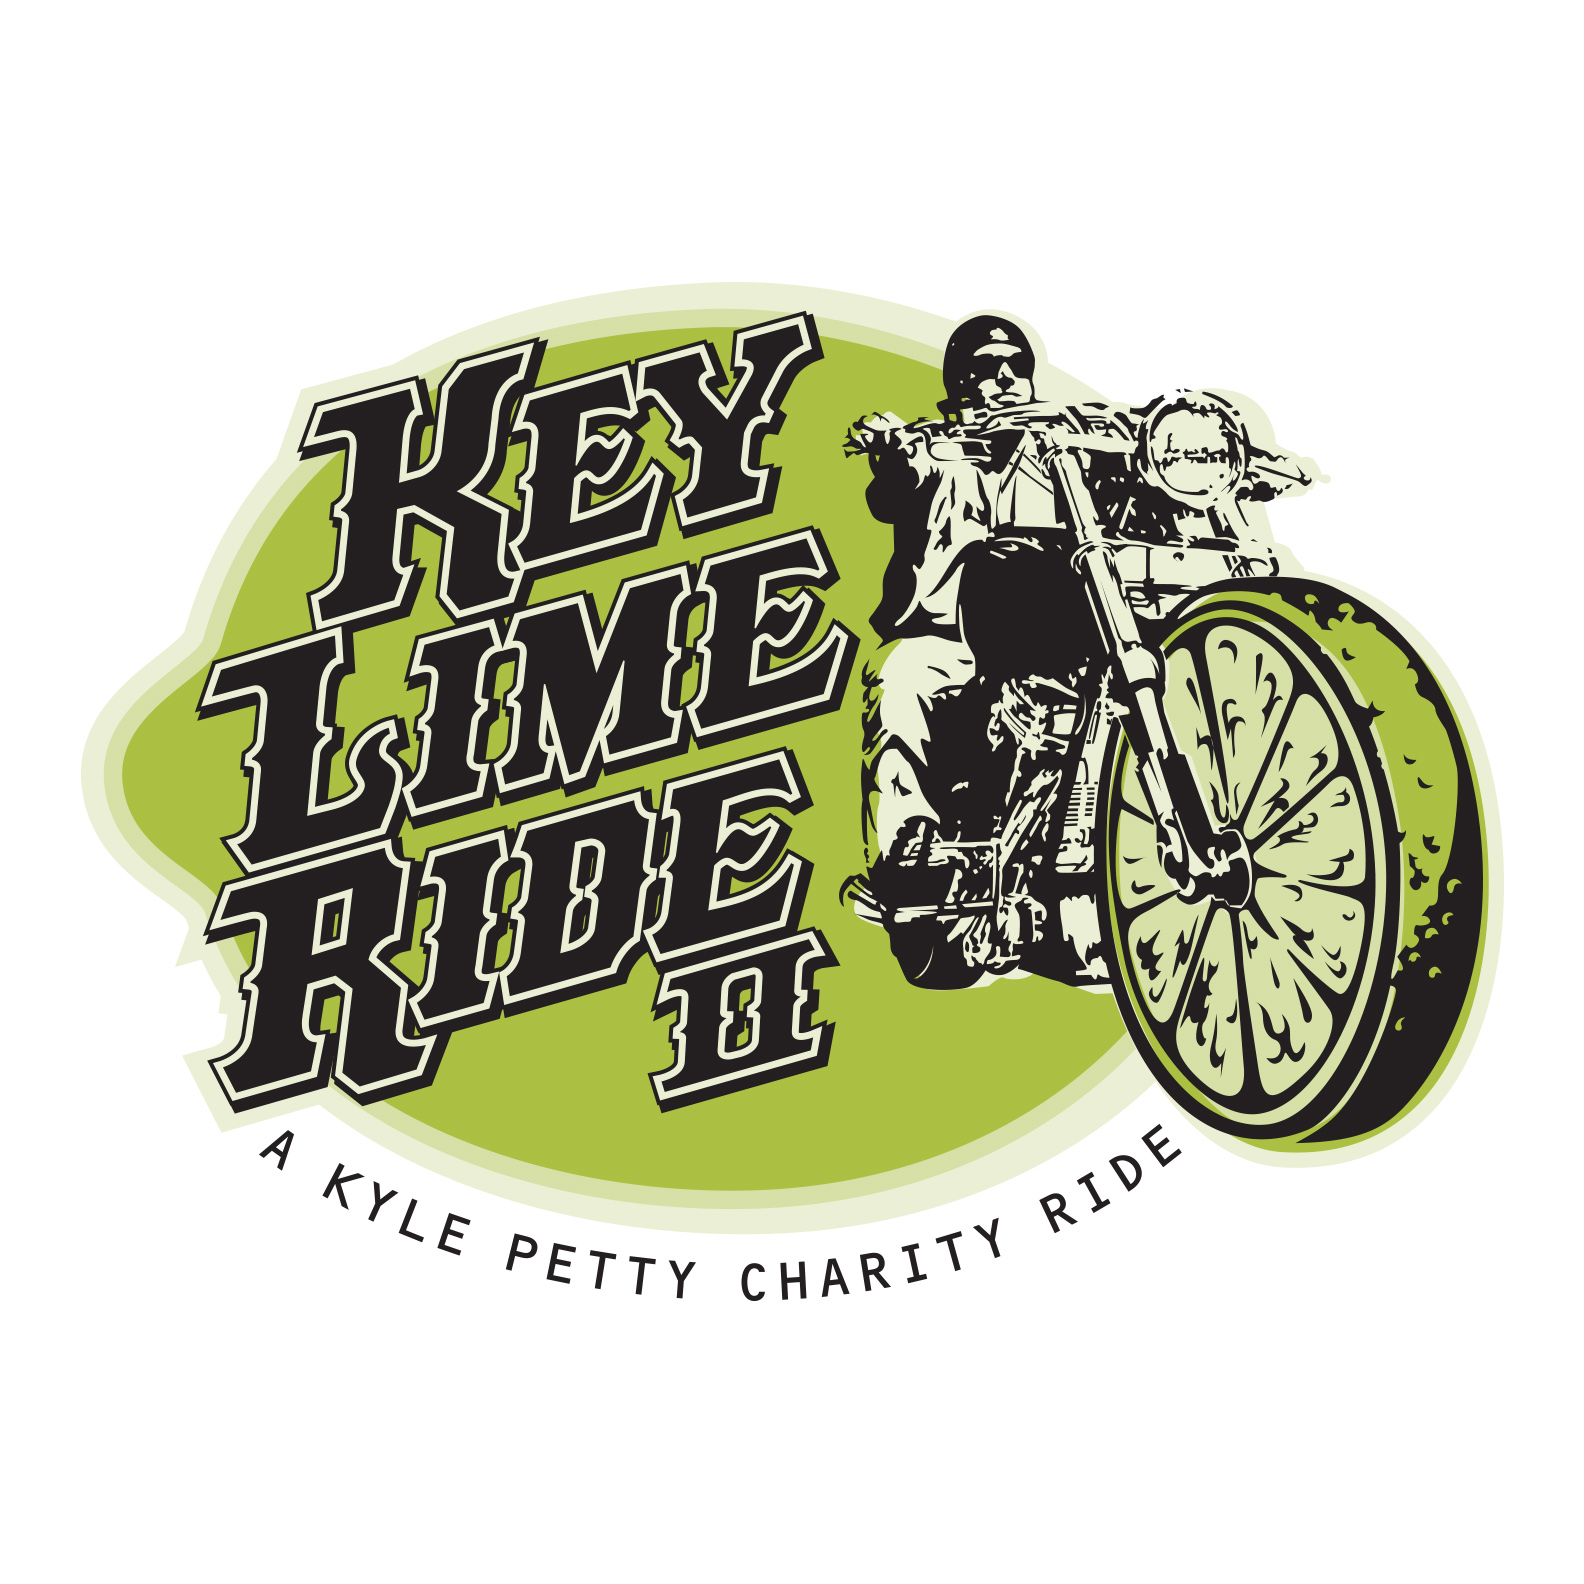 Kyle Petty Key Lime Ride Logo